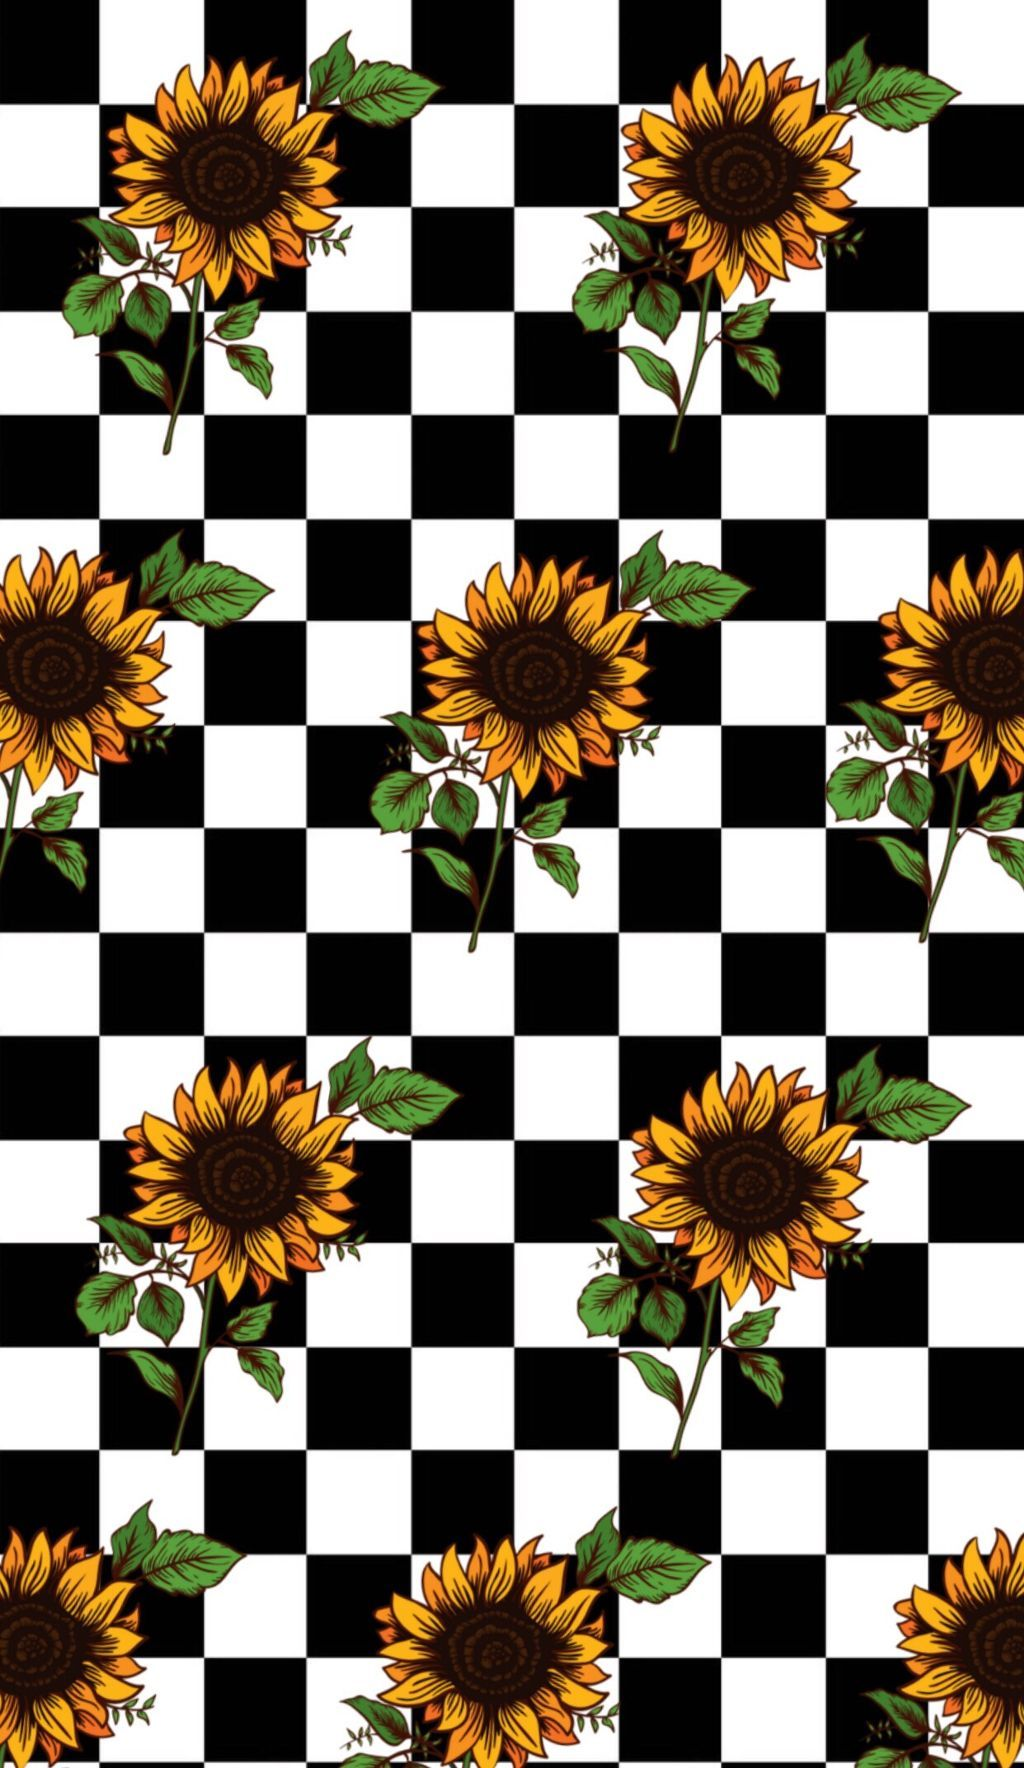 Download Checkerboard Sunflower Wallpaper Retro Wallpaper Iphone Sunflower Iphone Wallpaper Sunflower Wallpaper